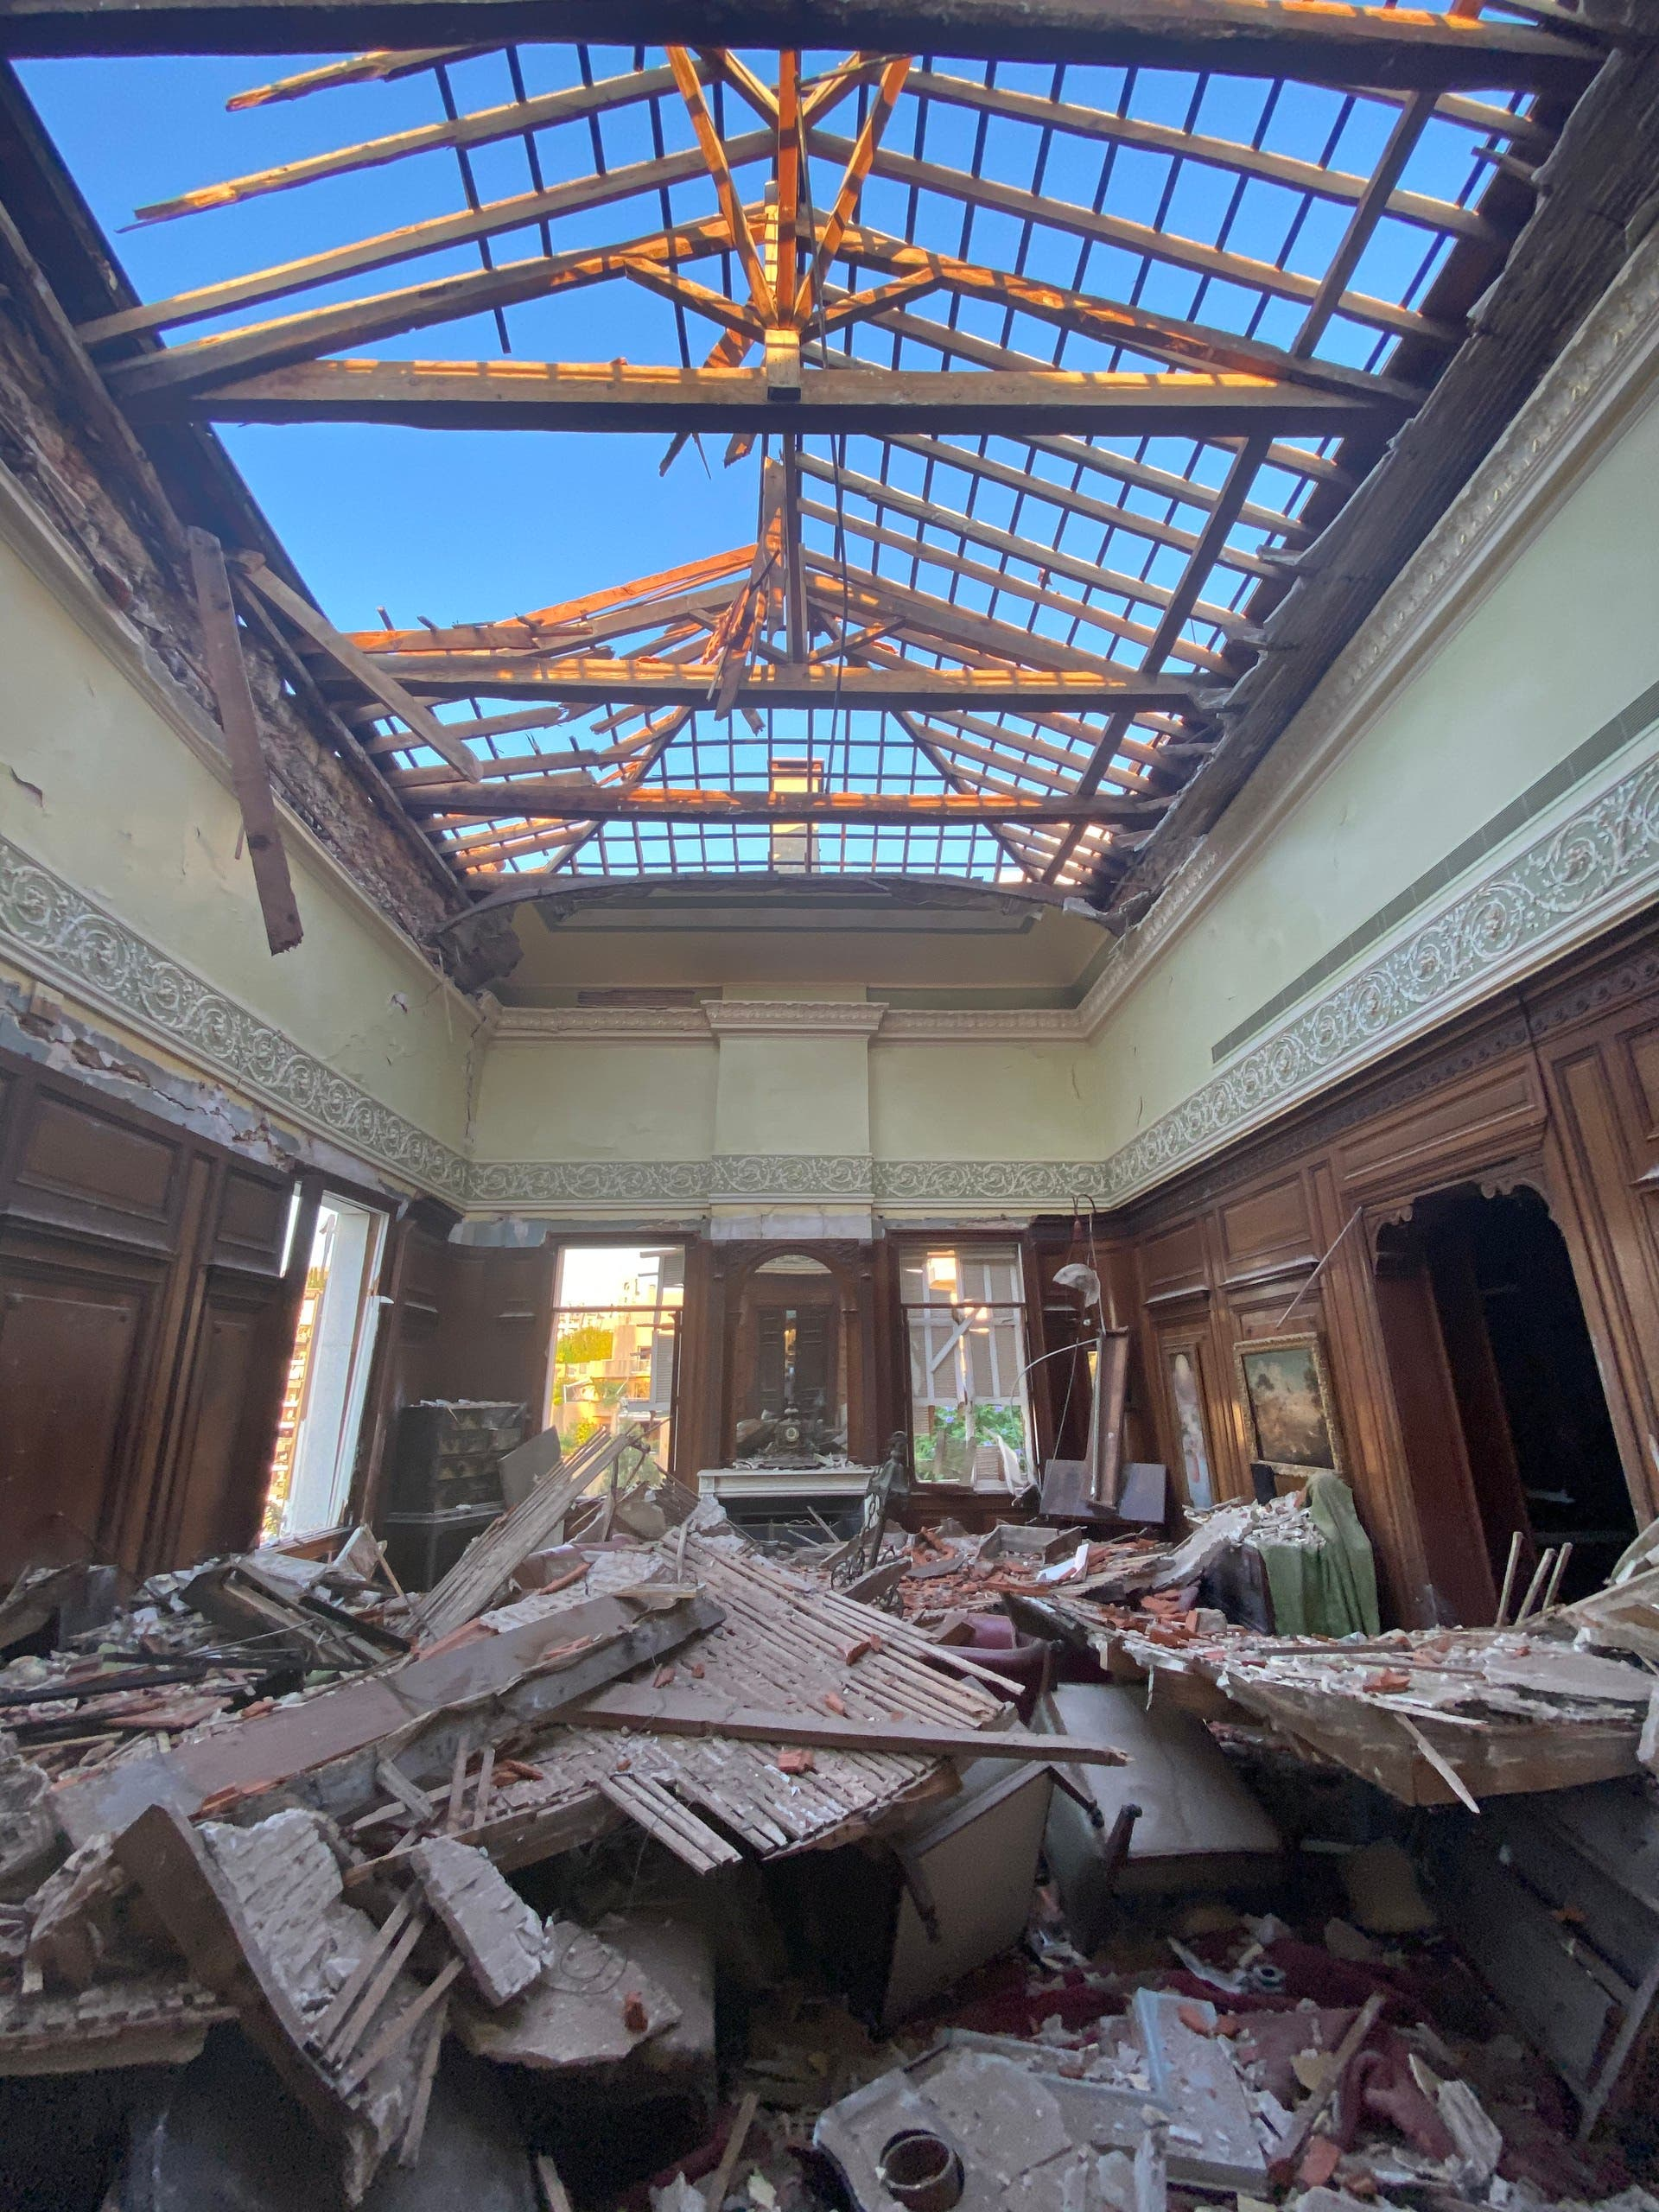 Sursock Palace's library taken after the blast, showing the collapsed roof. (Photo by Bassam Lahoud)